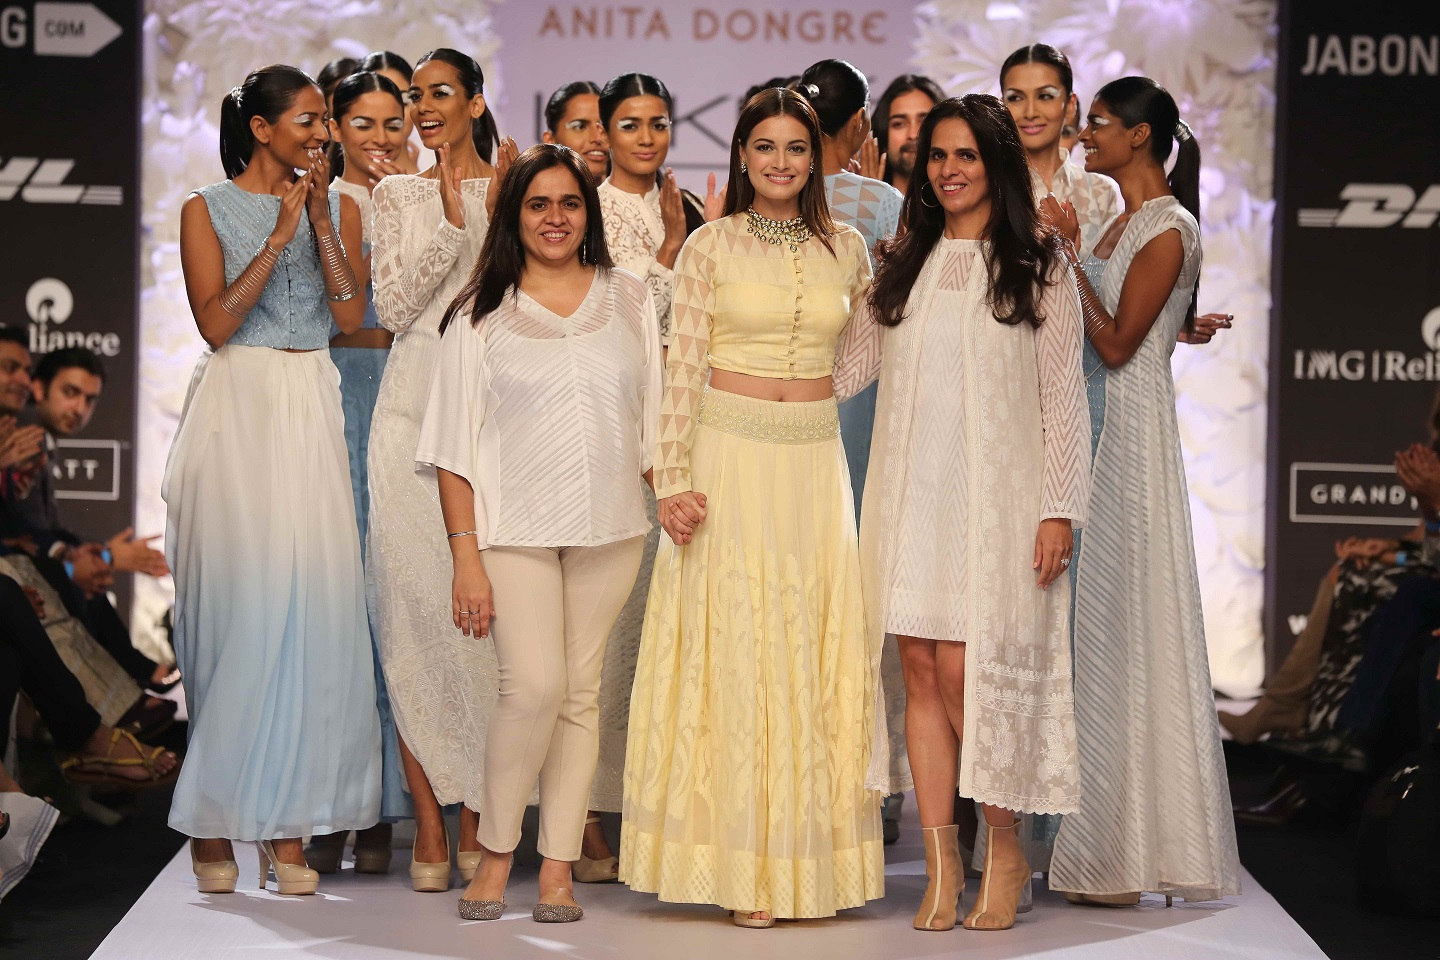 """Known for her many experiments with textiles, Anita Dongre ended Day Three at Lakmé Fashion Week Summer/Resort 2014 with her utterly breathtaking pastel collection called """"Varanasi Weaves"""" which was a tribute to the traditional Indian fabrics. Inspir"""